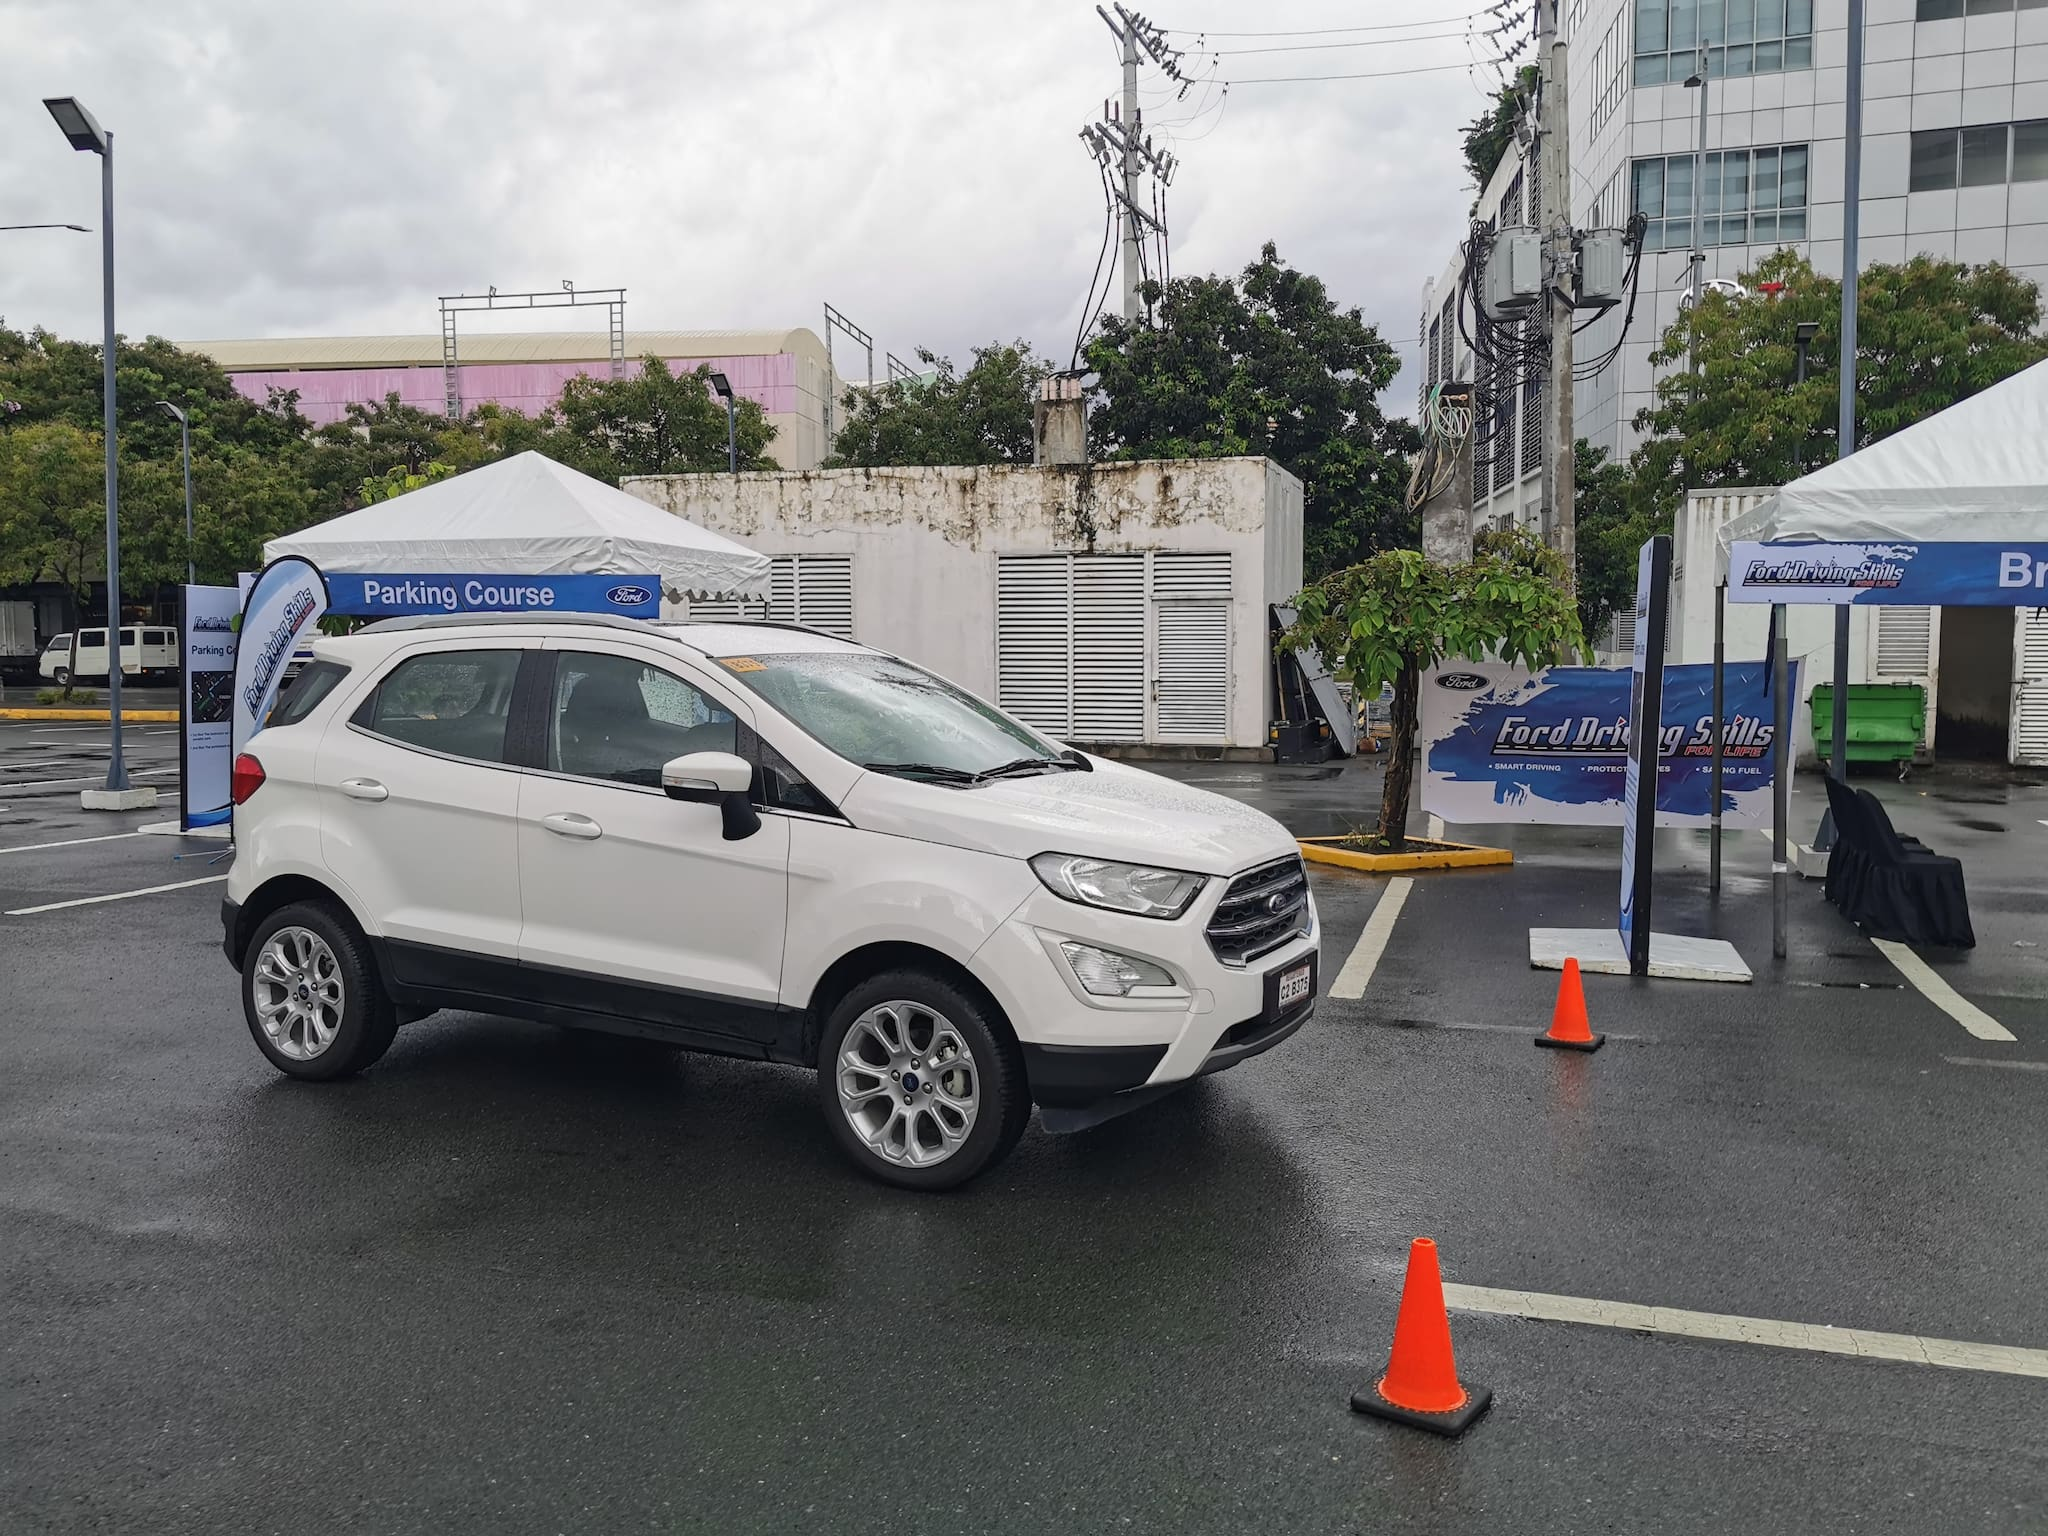 Ford Driving Skills for Life: Over 23,000 Participants and Counting